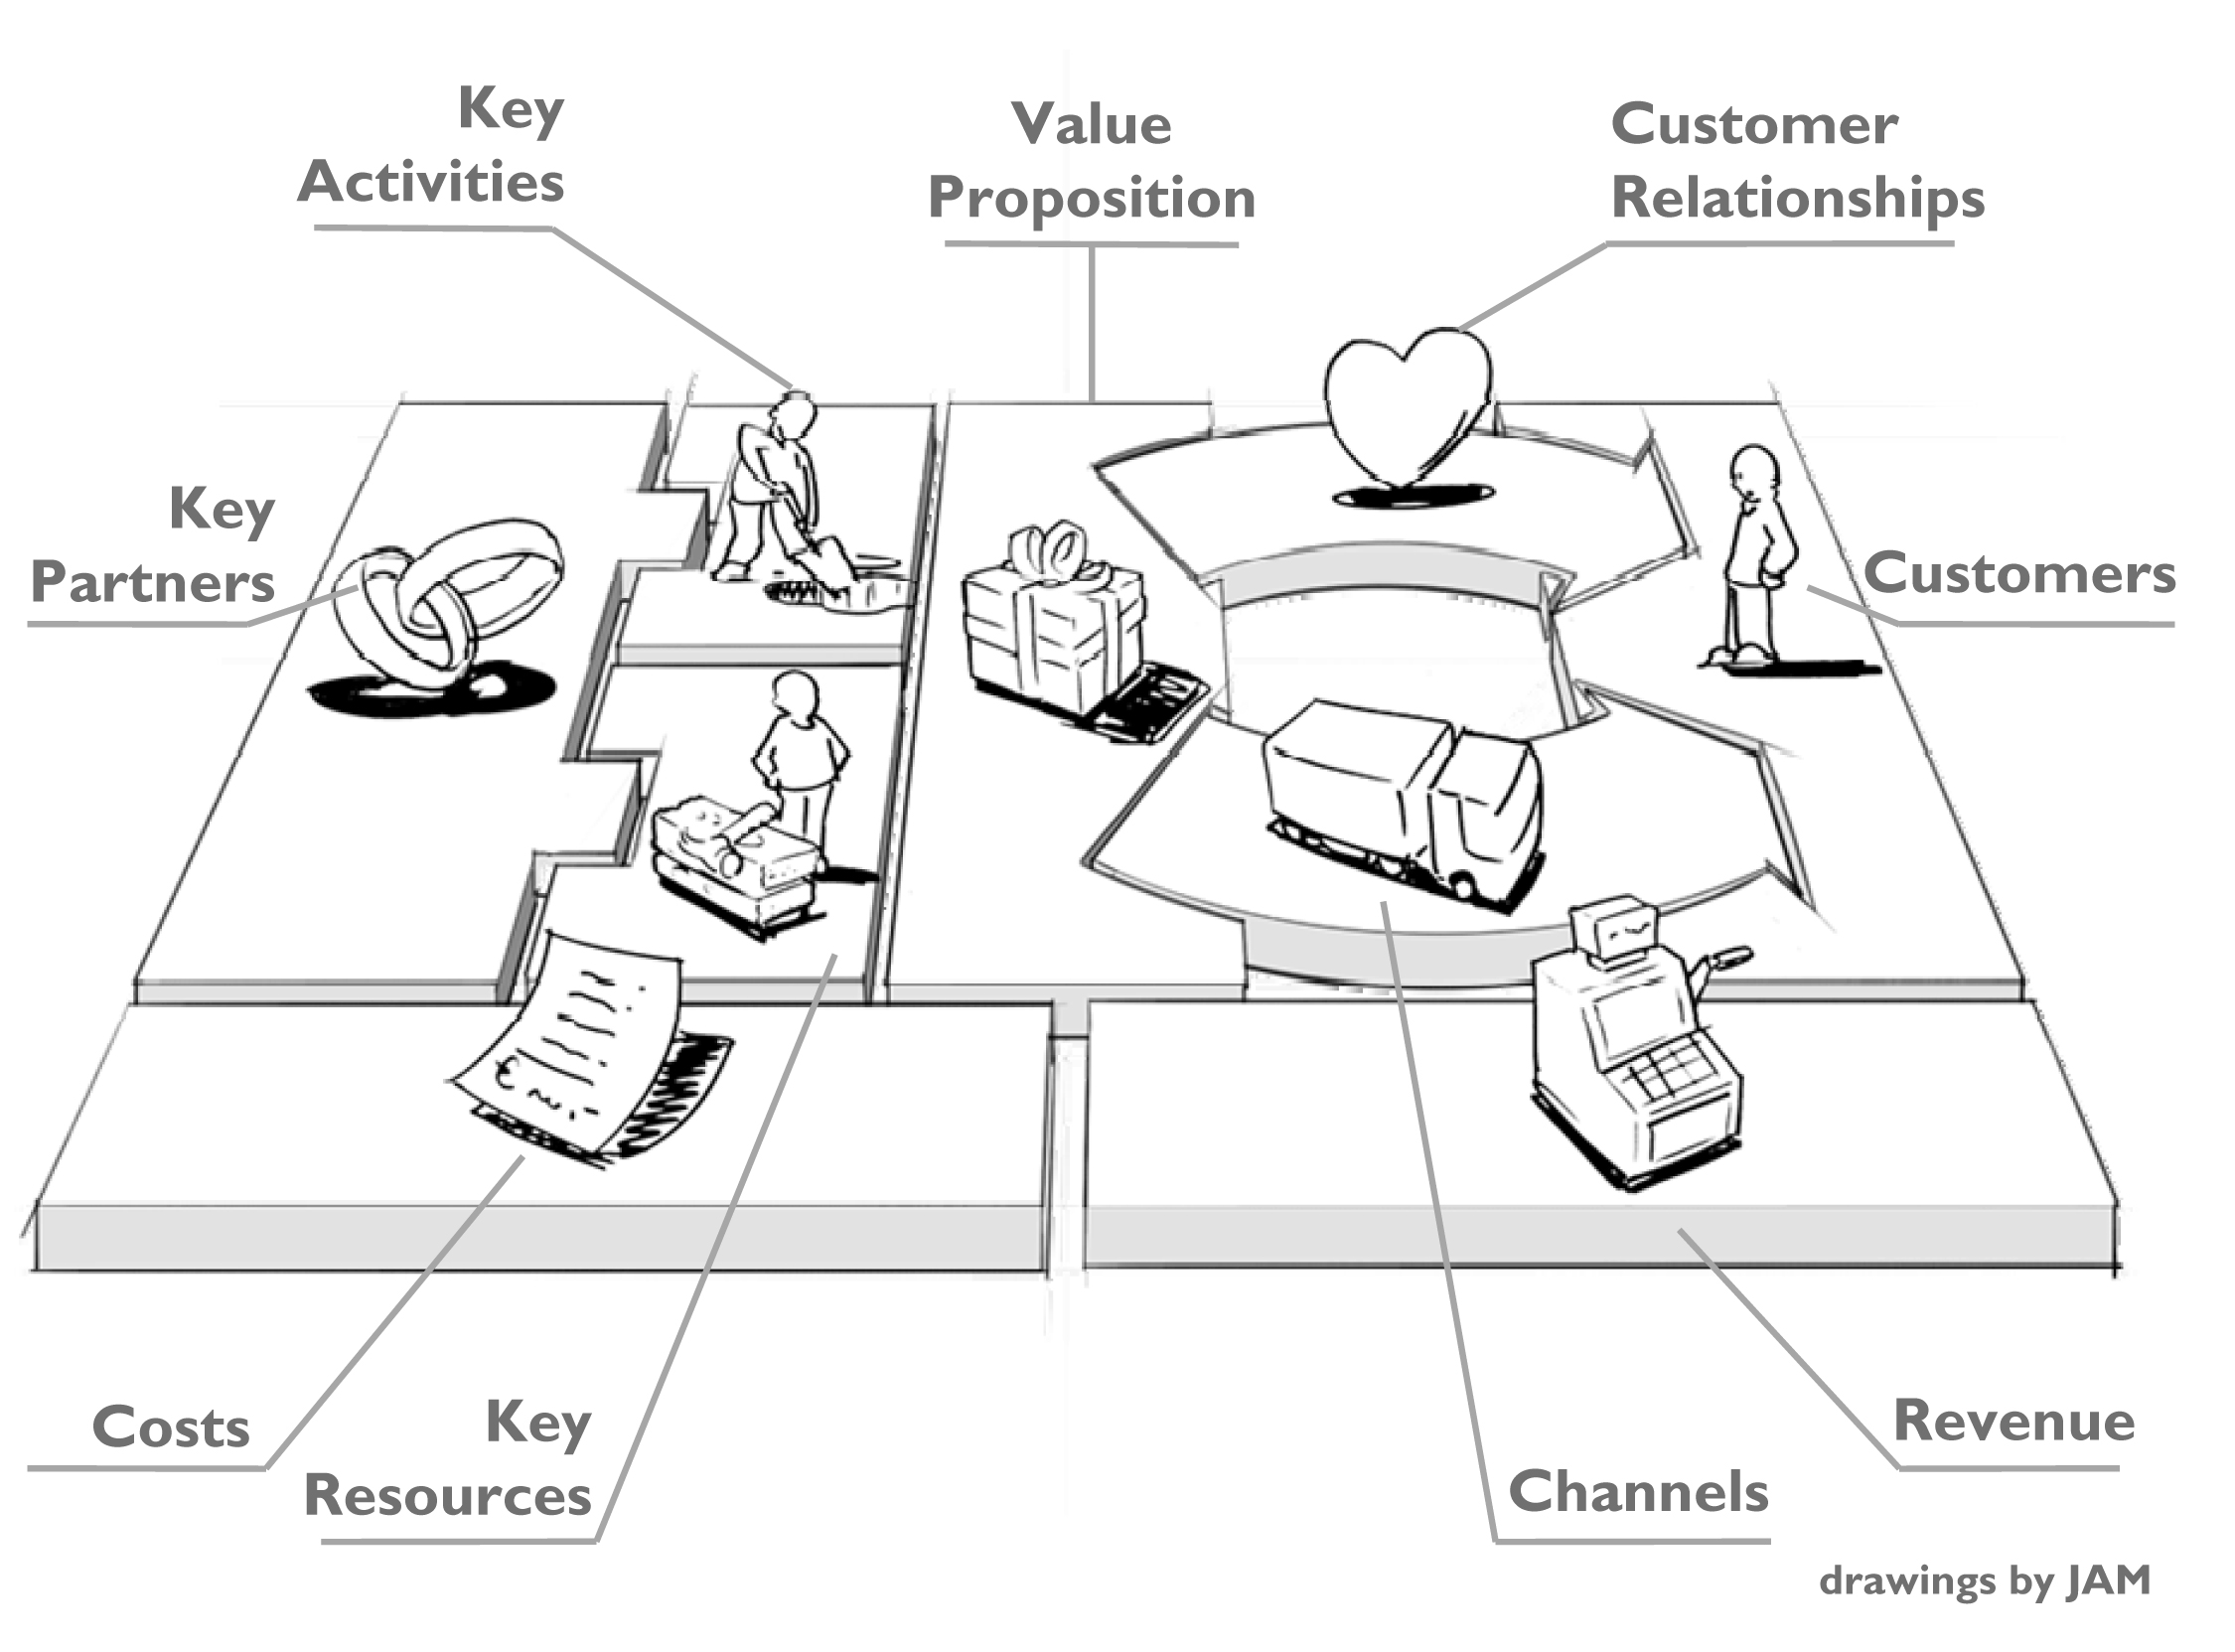 Dal Marketing Strategico al Business Model Canvas